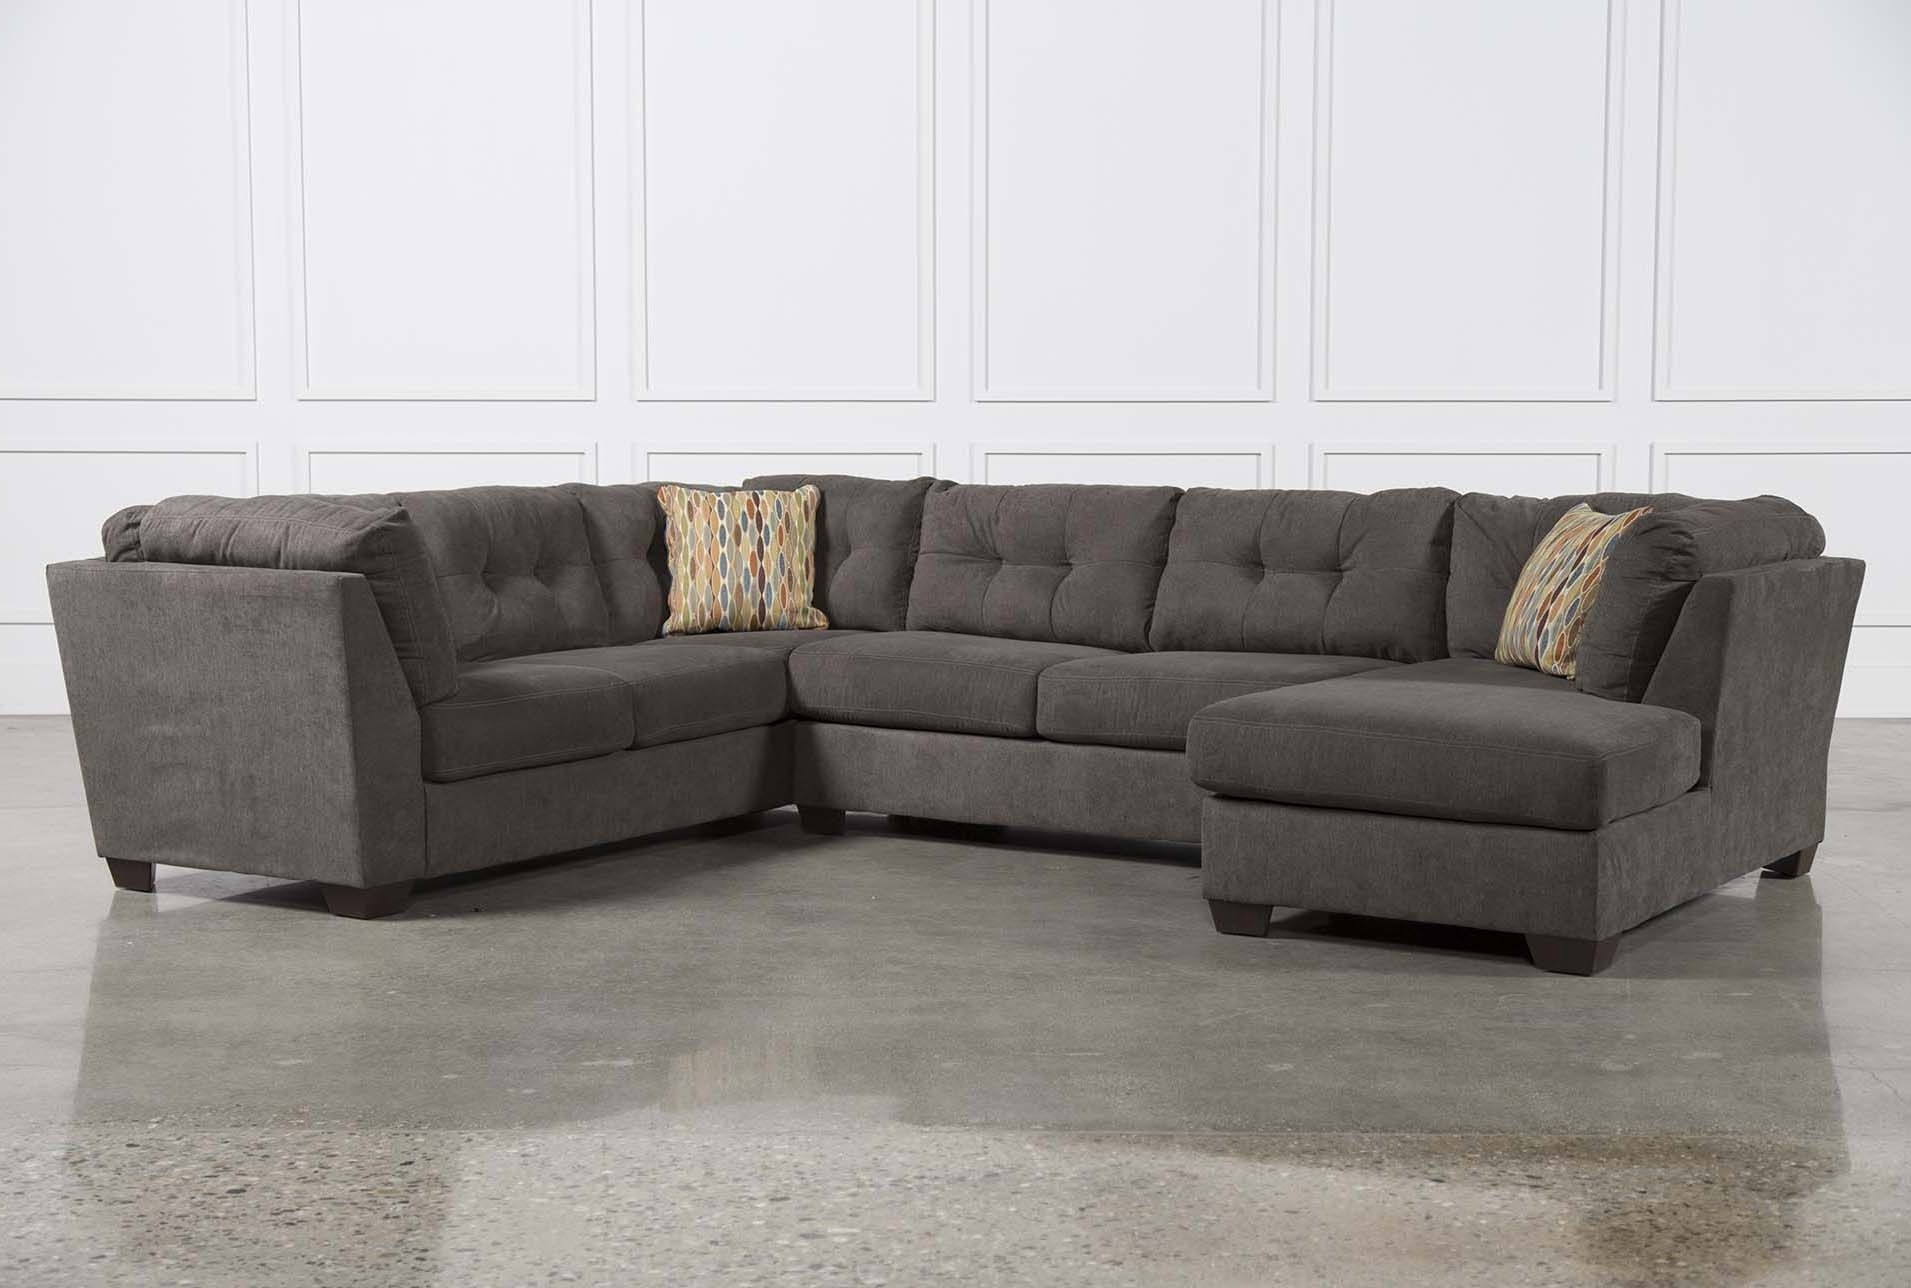 Norfolk Grey 3 Piece Sectional W/laf Chaise in Norfolk Grey 3 Piece Sectionals With Laf Chaise (Image 21 of 30)